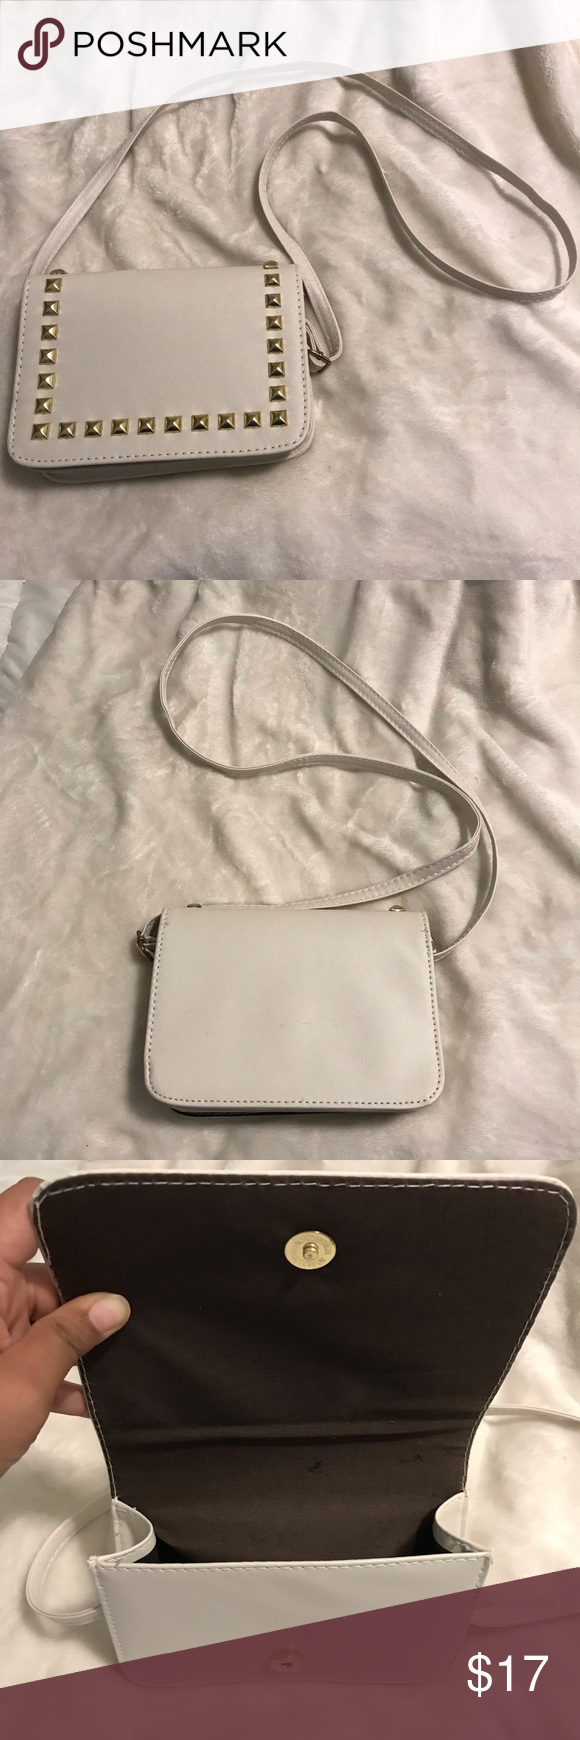 Crossbody Purse • White • Small • Flap • Style: Glamorous  • Embellished: Studded • Adjustable Strap Bags Crossbody Bags #myposhpicks